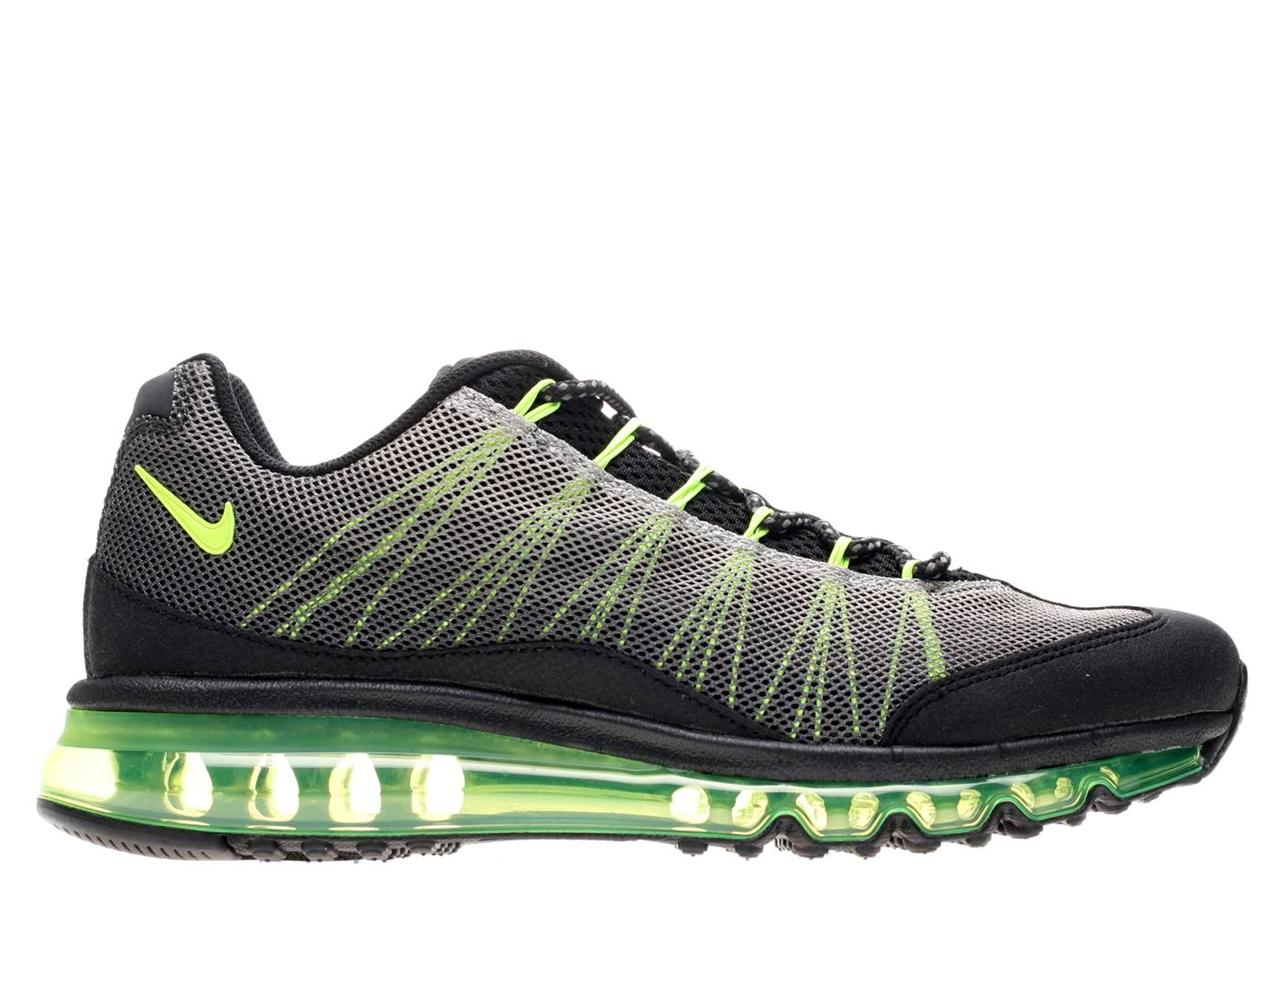 nike air max 95 2013 dyn fw black lime green royal grey. Black Bedroom Furniture Sets. Home Design Ideas